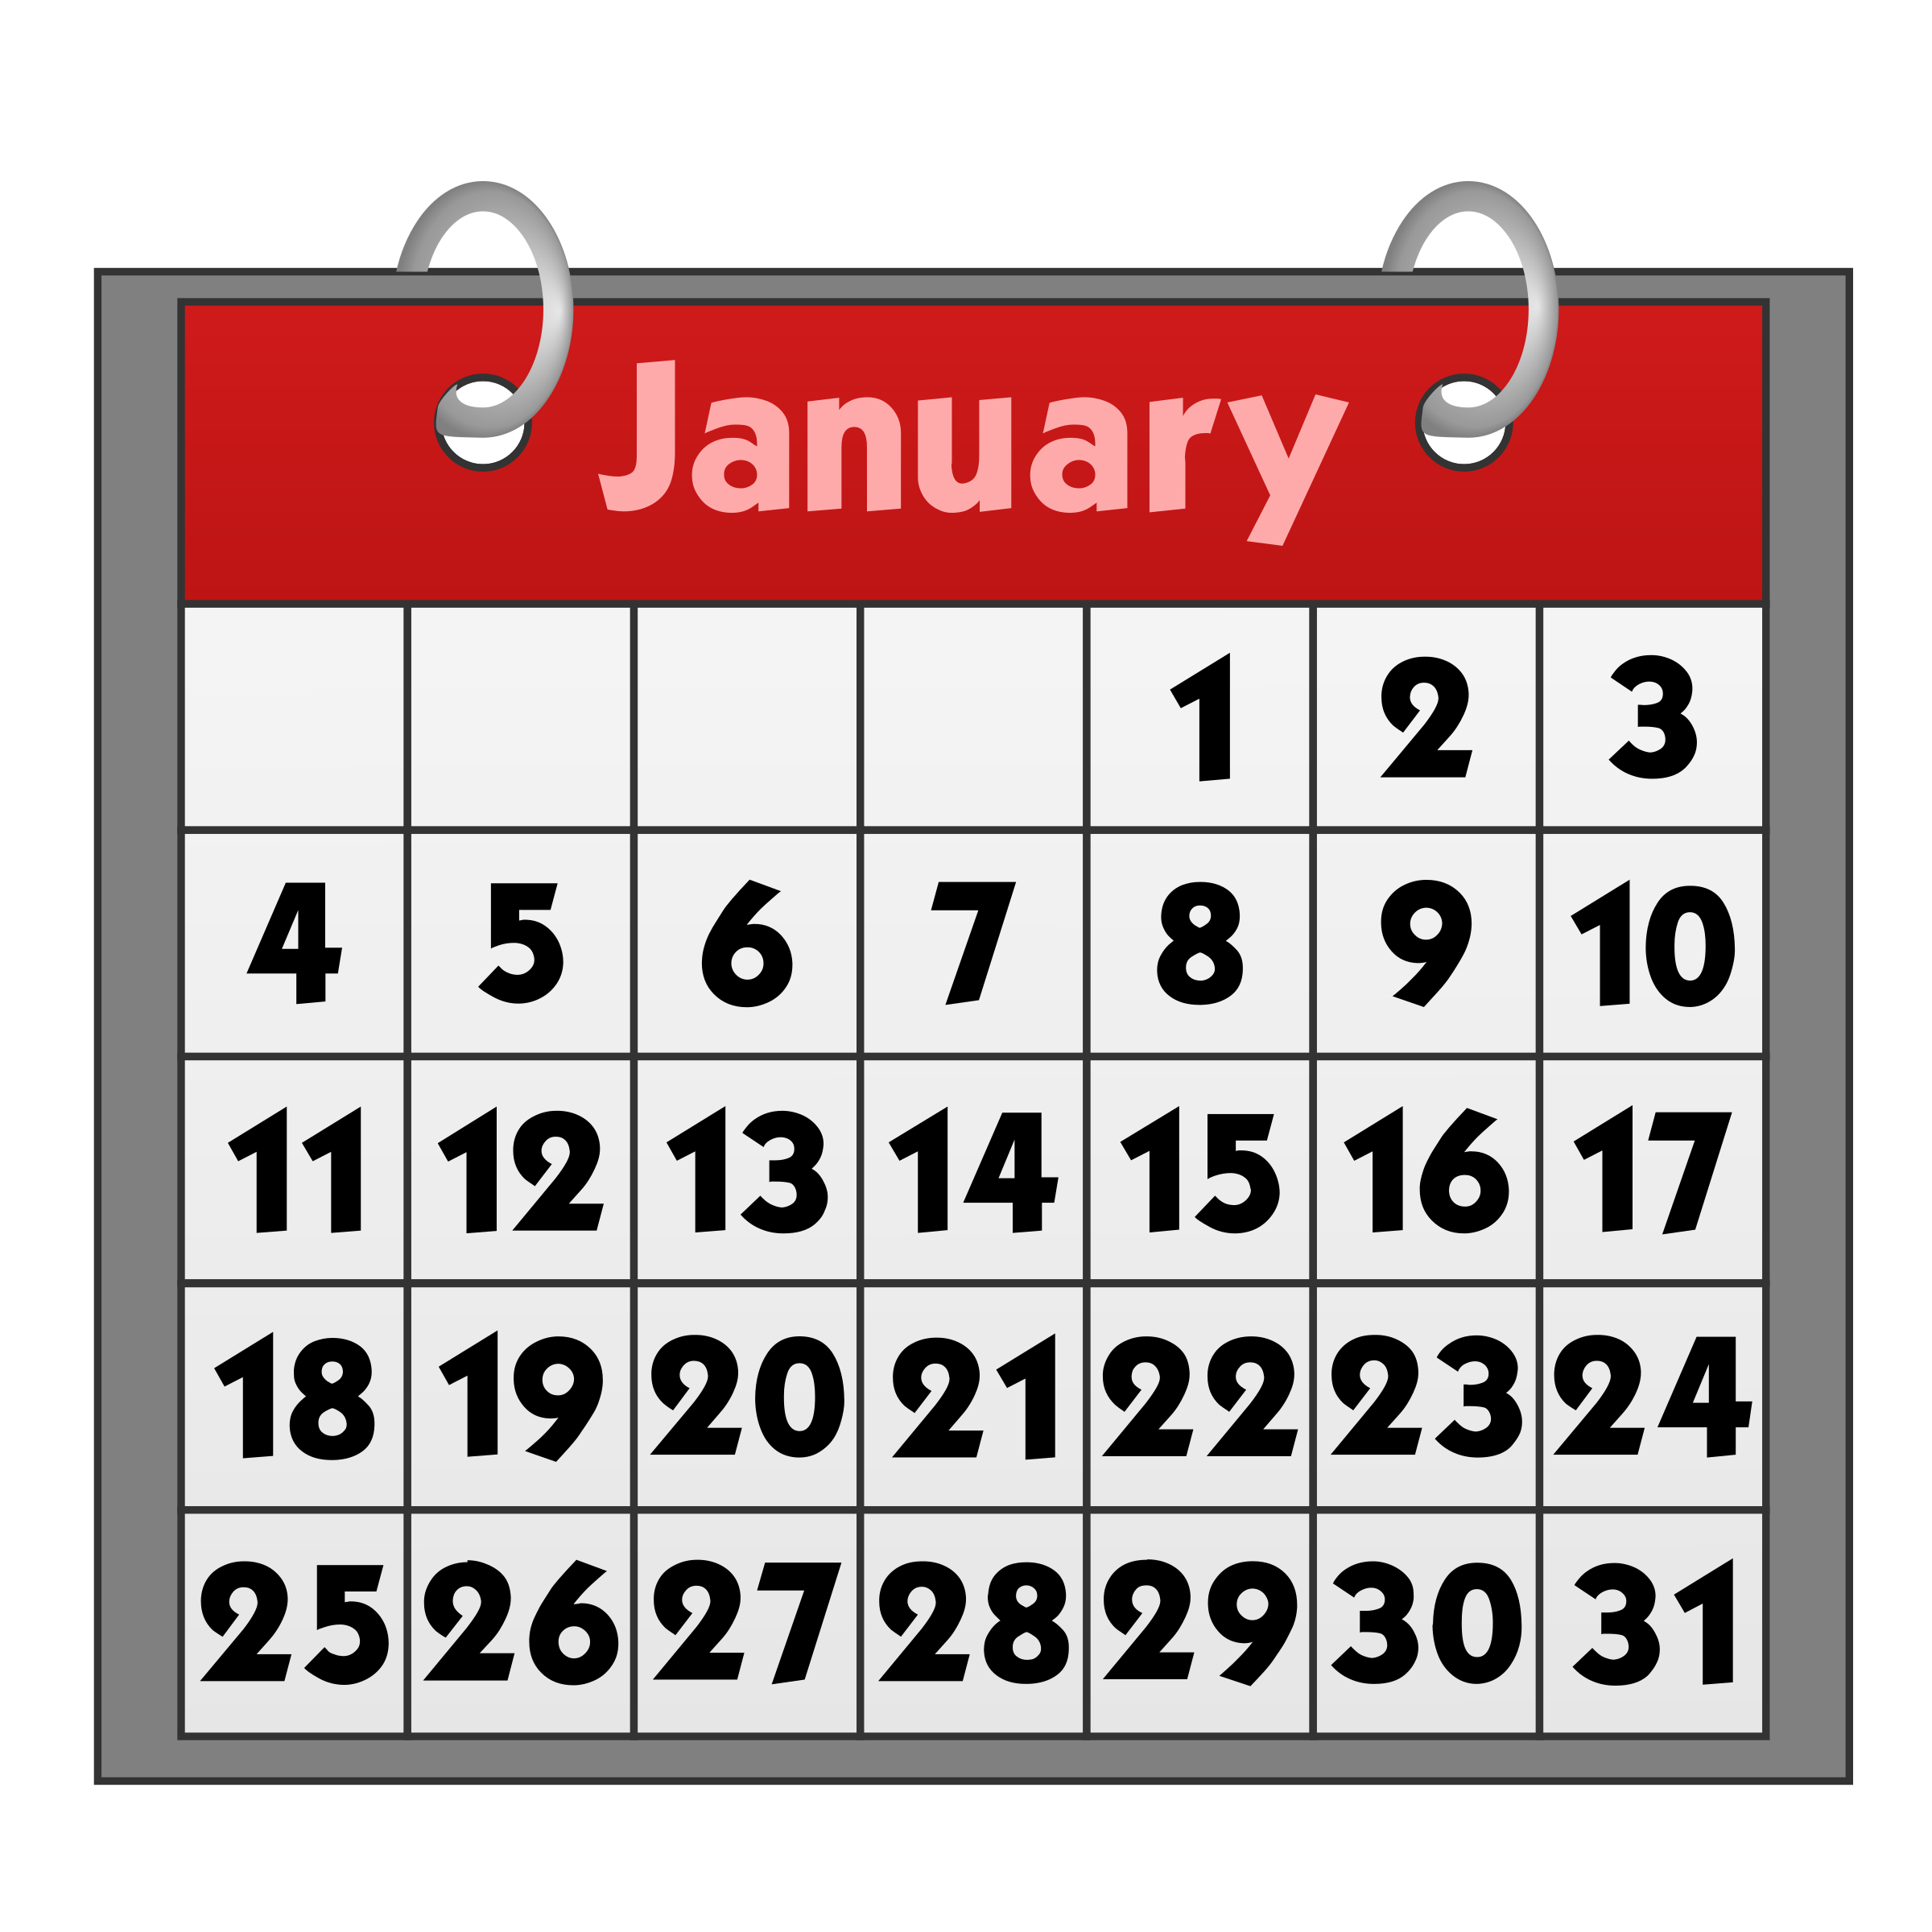 Free clipart january calendar. Images gallery for download